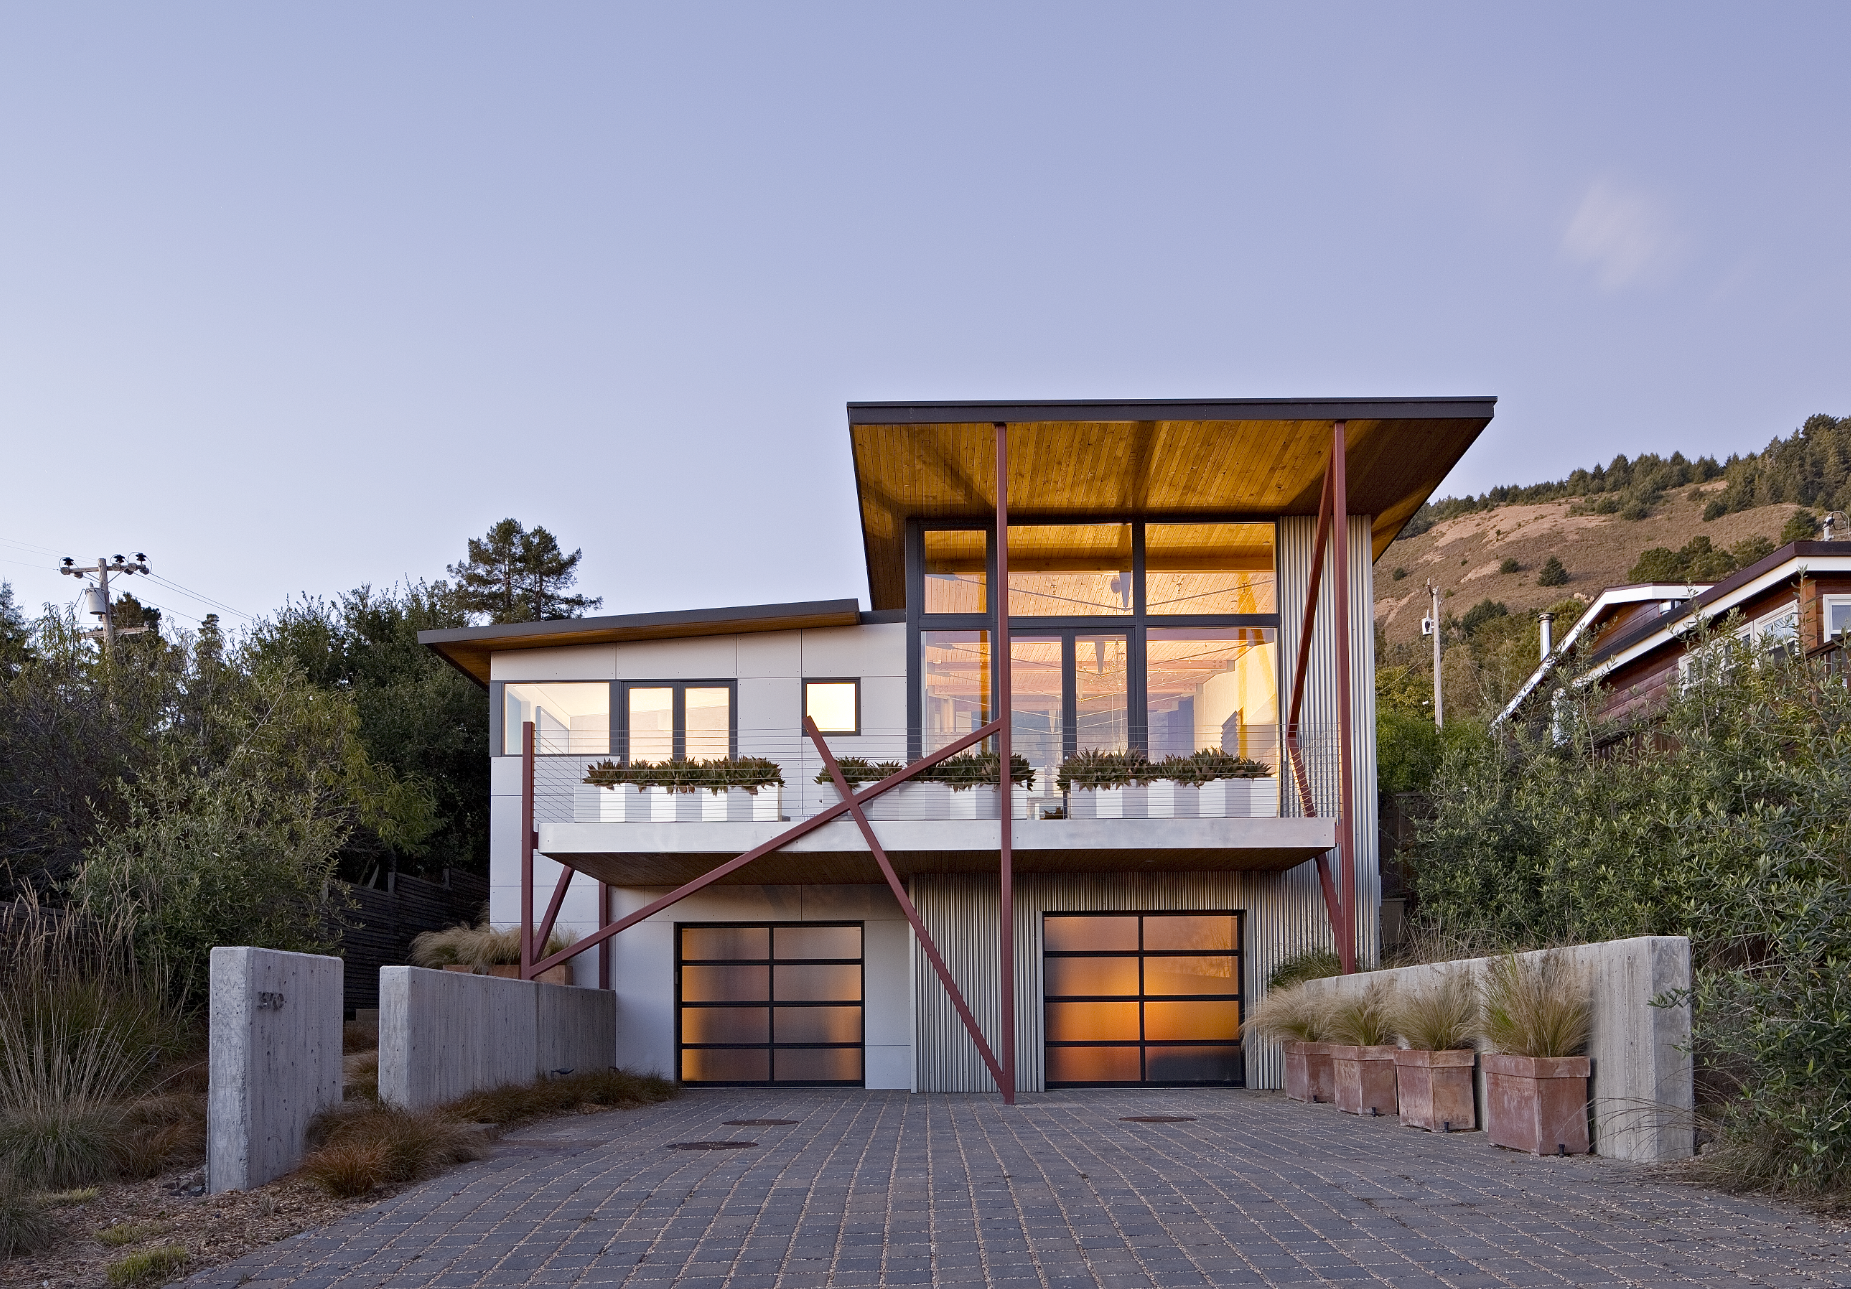 Marin projects